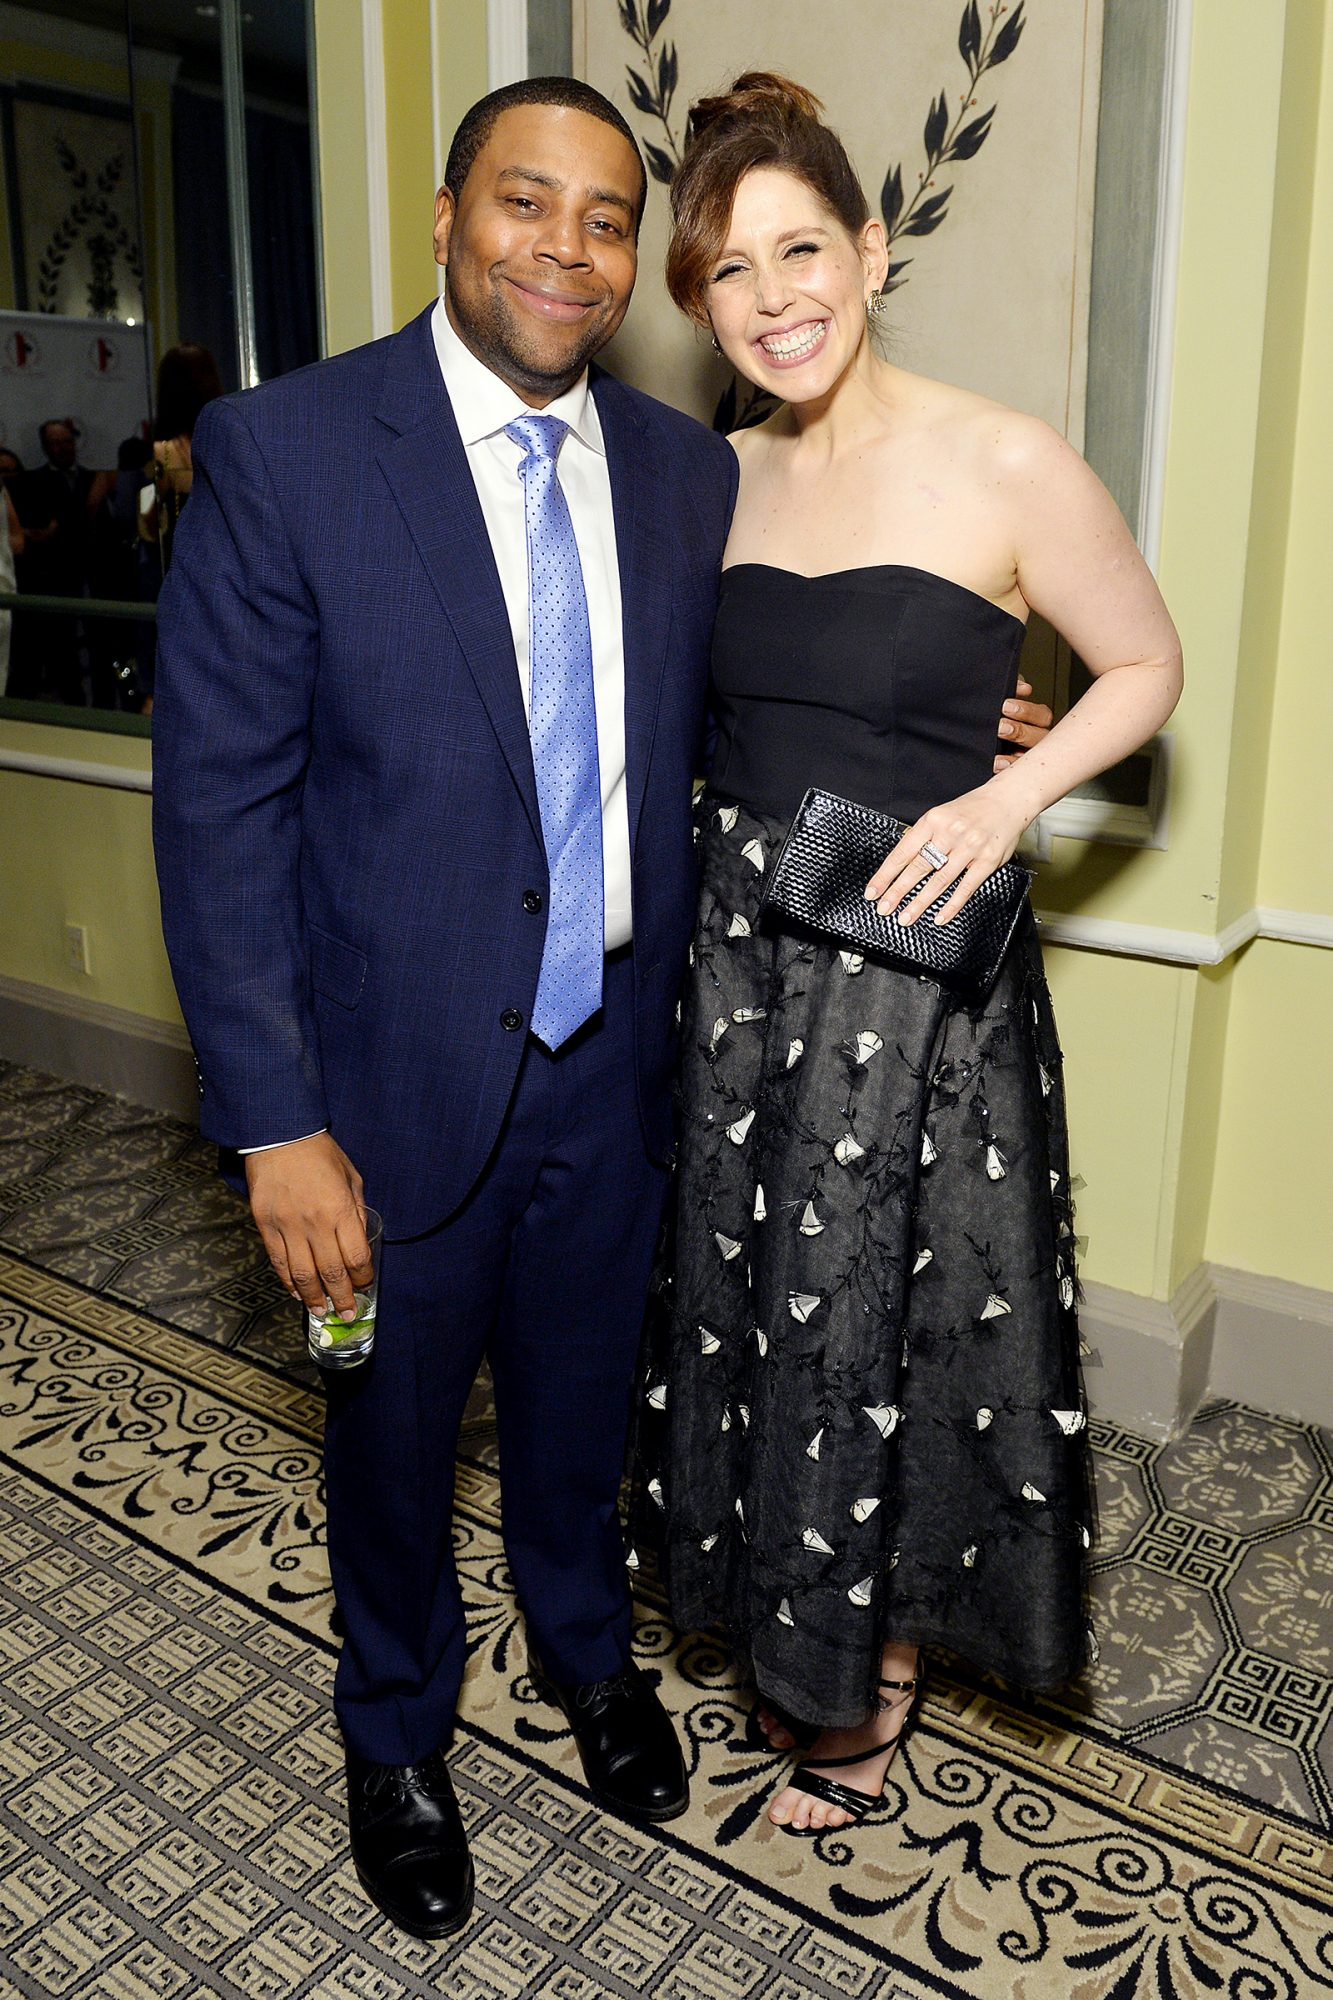 Kenan Thompson (L) and Vanessa Bayer attend the Gilda's Club NYC 24th Annual Gala at The Pierre Hotel on November 07, 2019 in New York City